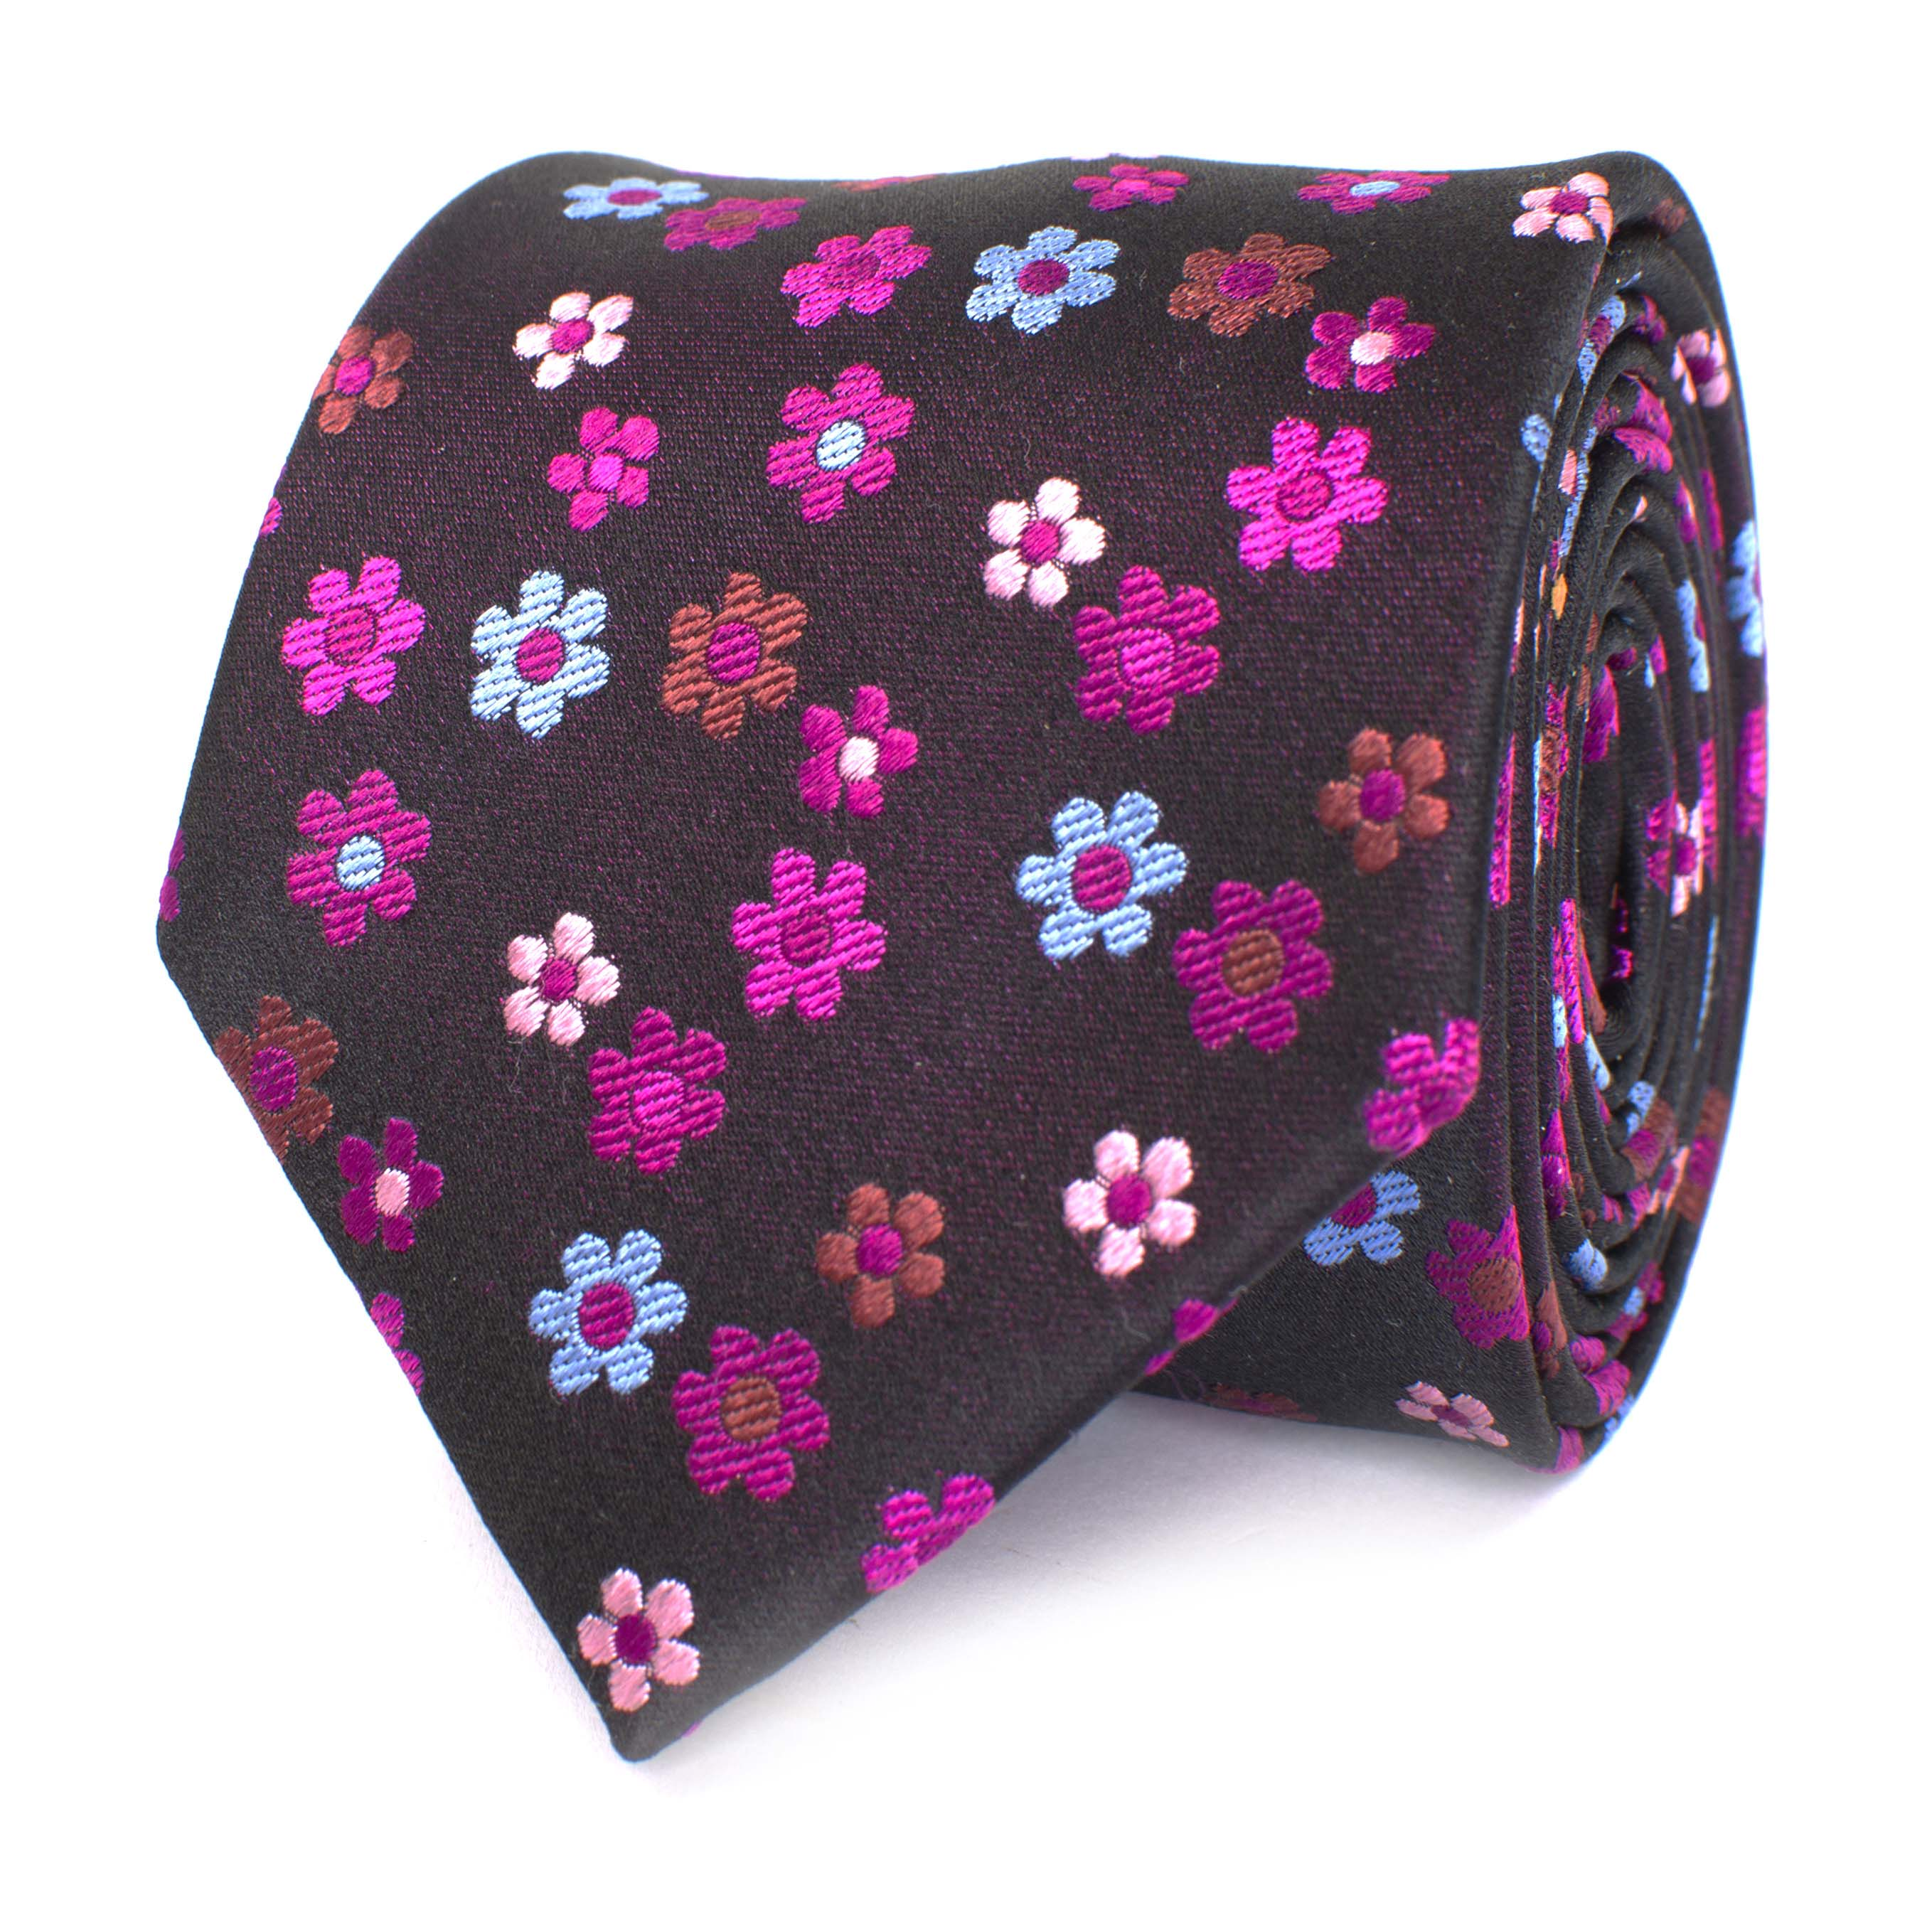 Tie fuchsia with flower design